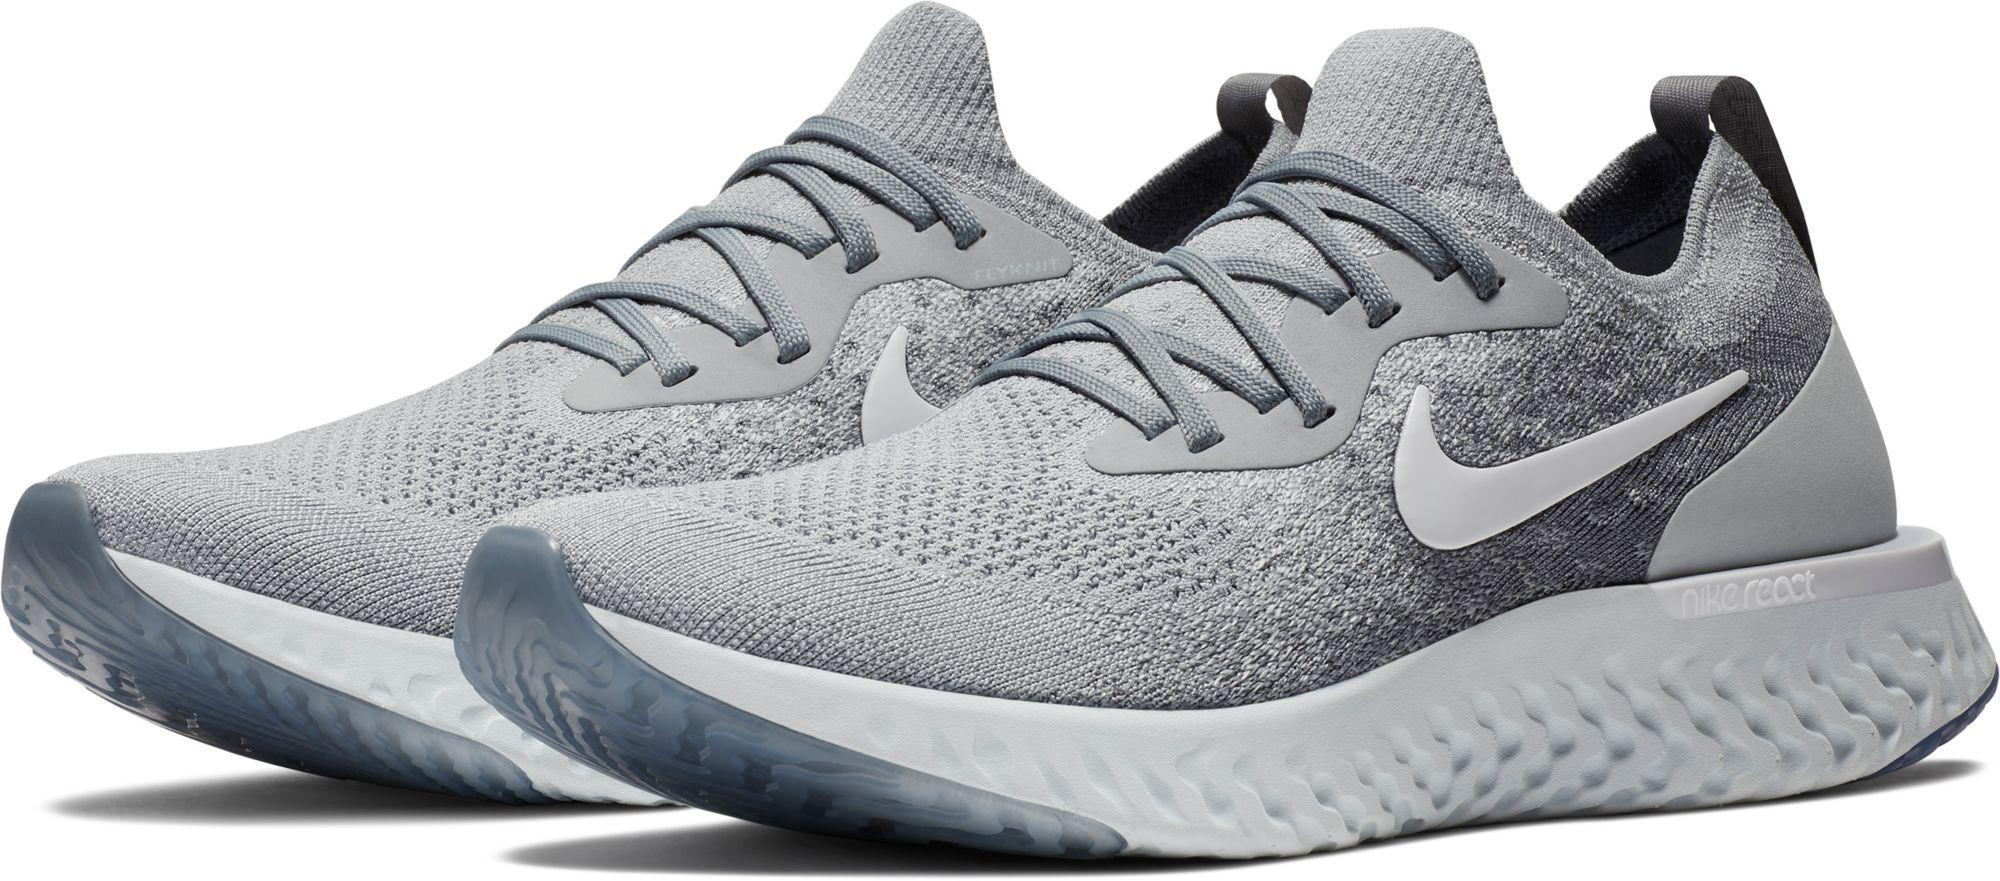 d726c486d675 Lyst - Nike Epic React Flyknit Running Shoes in Gray for Men